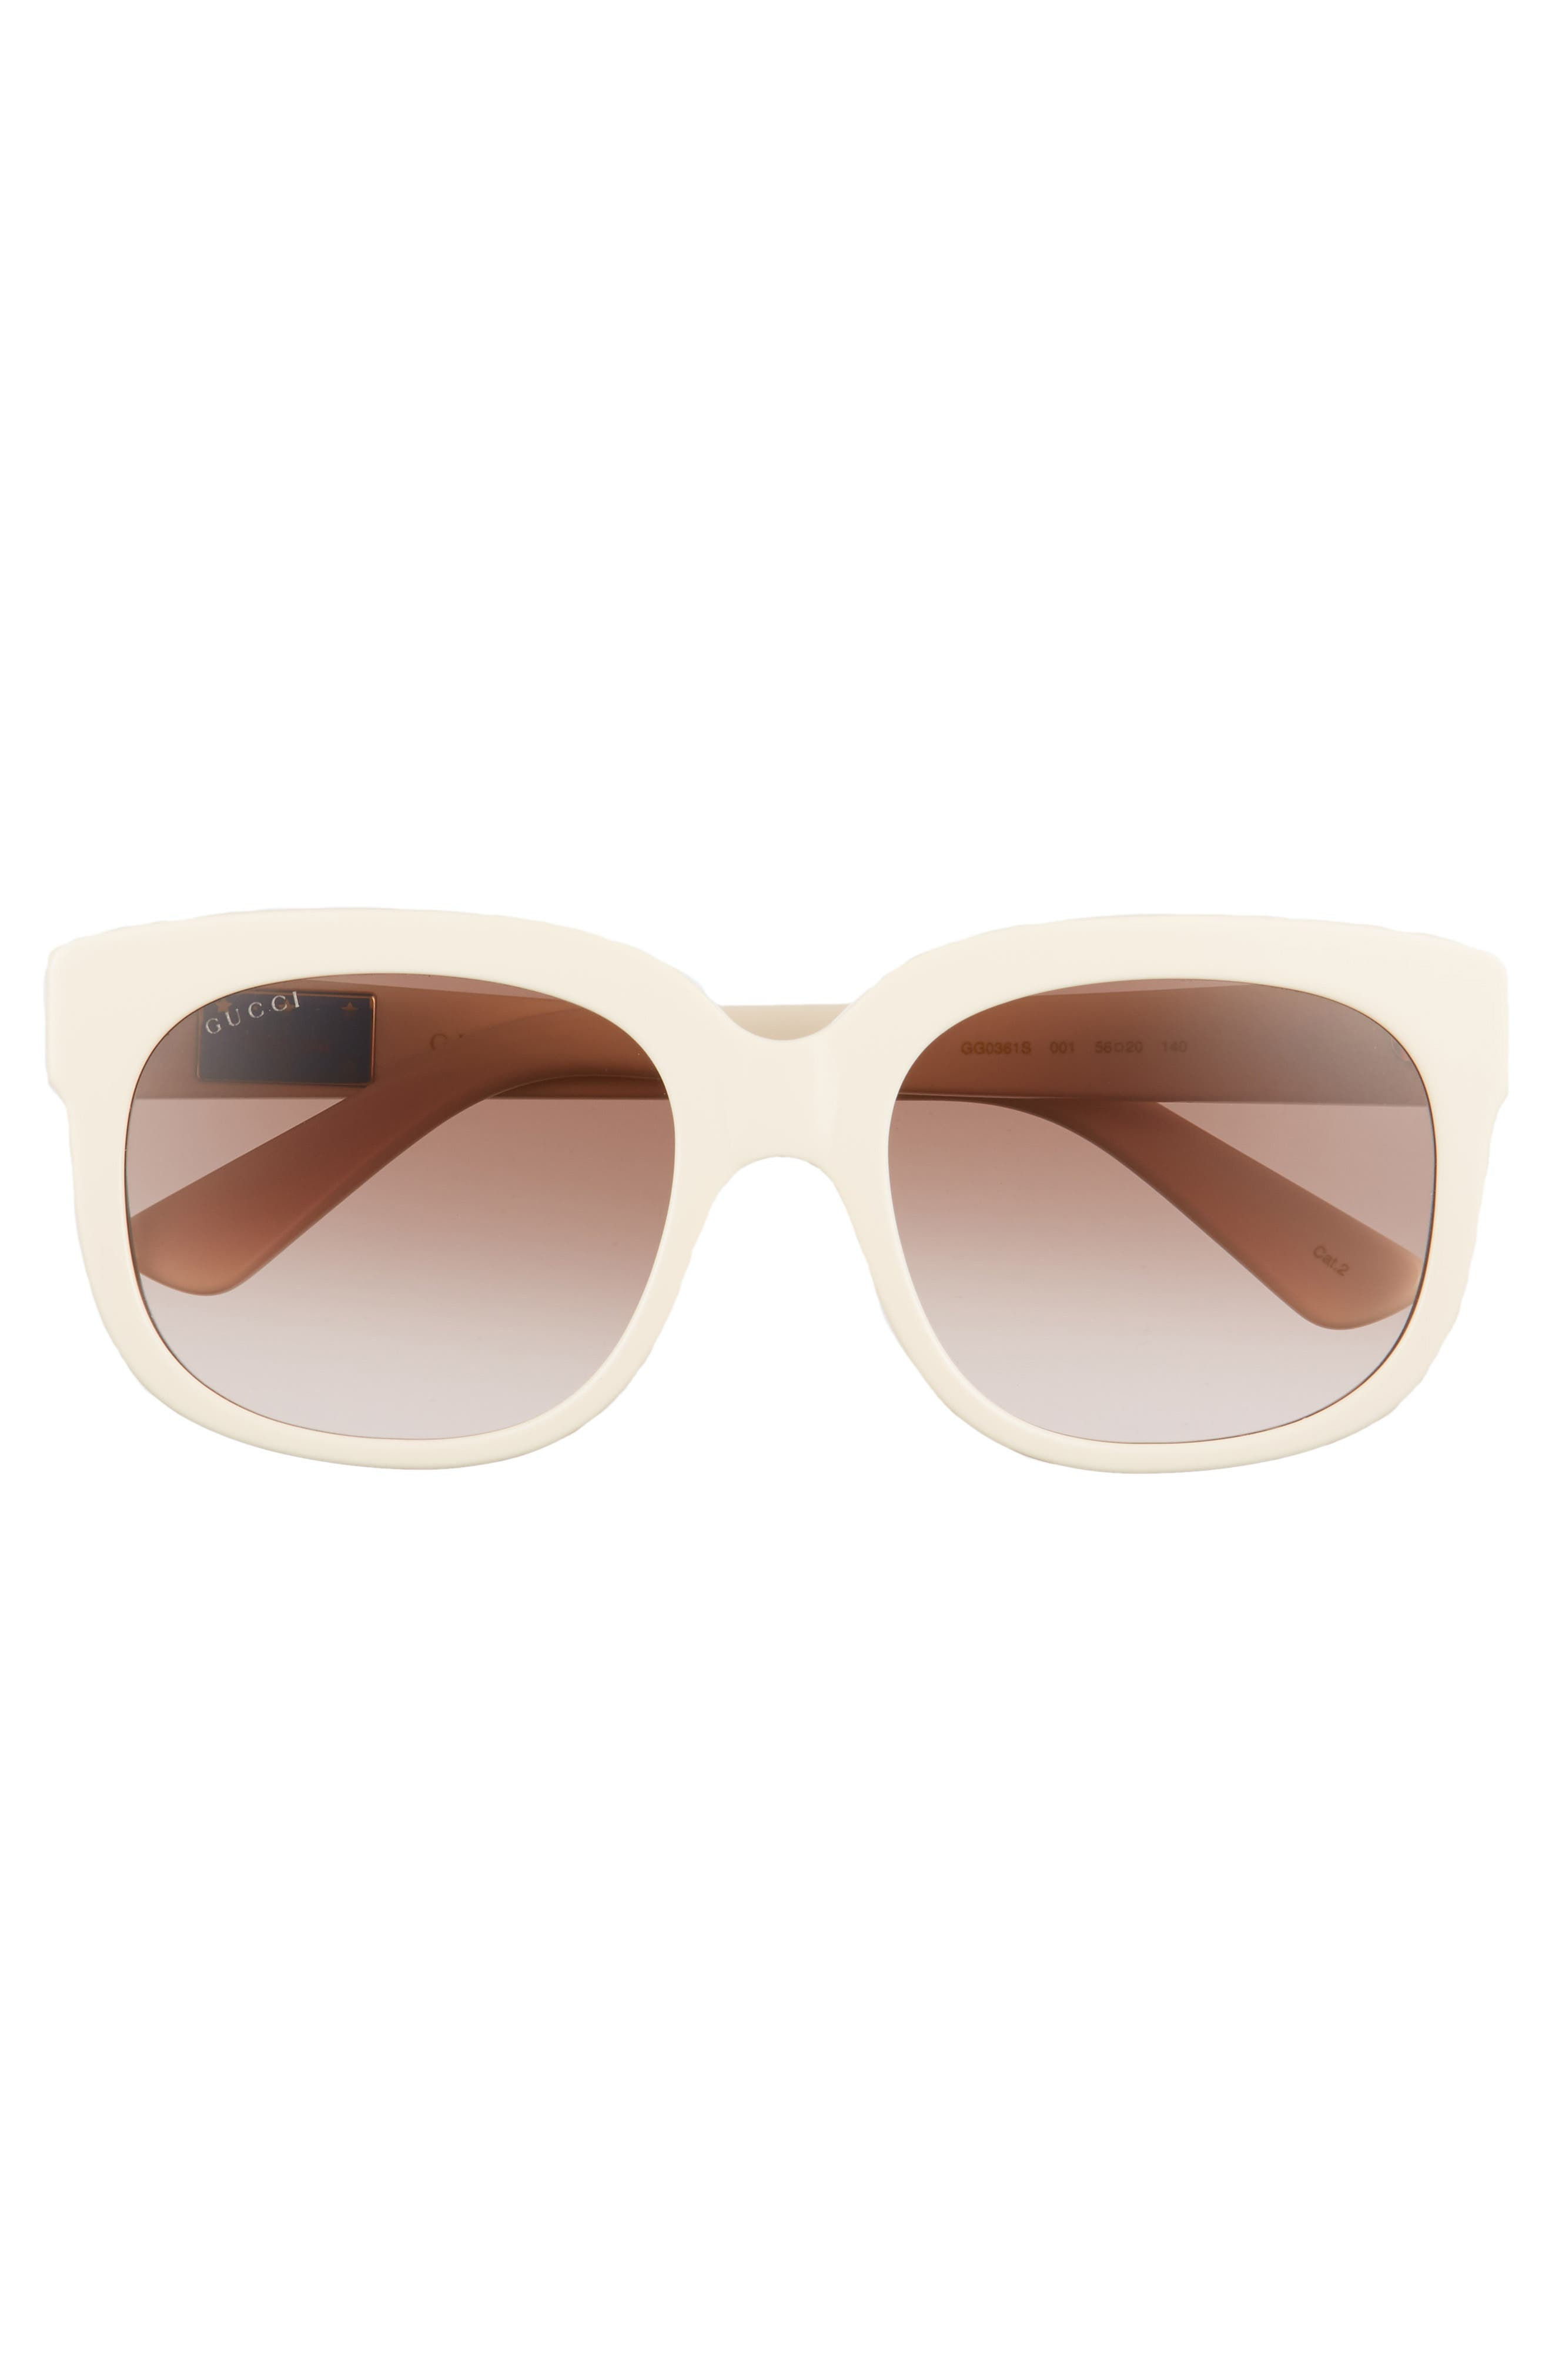 56mm Gradient Cat Eye Sunglasses,                             Alternate thumbnail 3, color,                             IVORY/ BROWN/ PINK